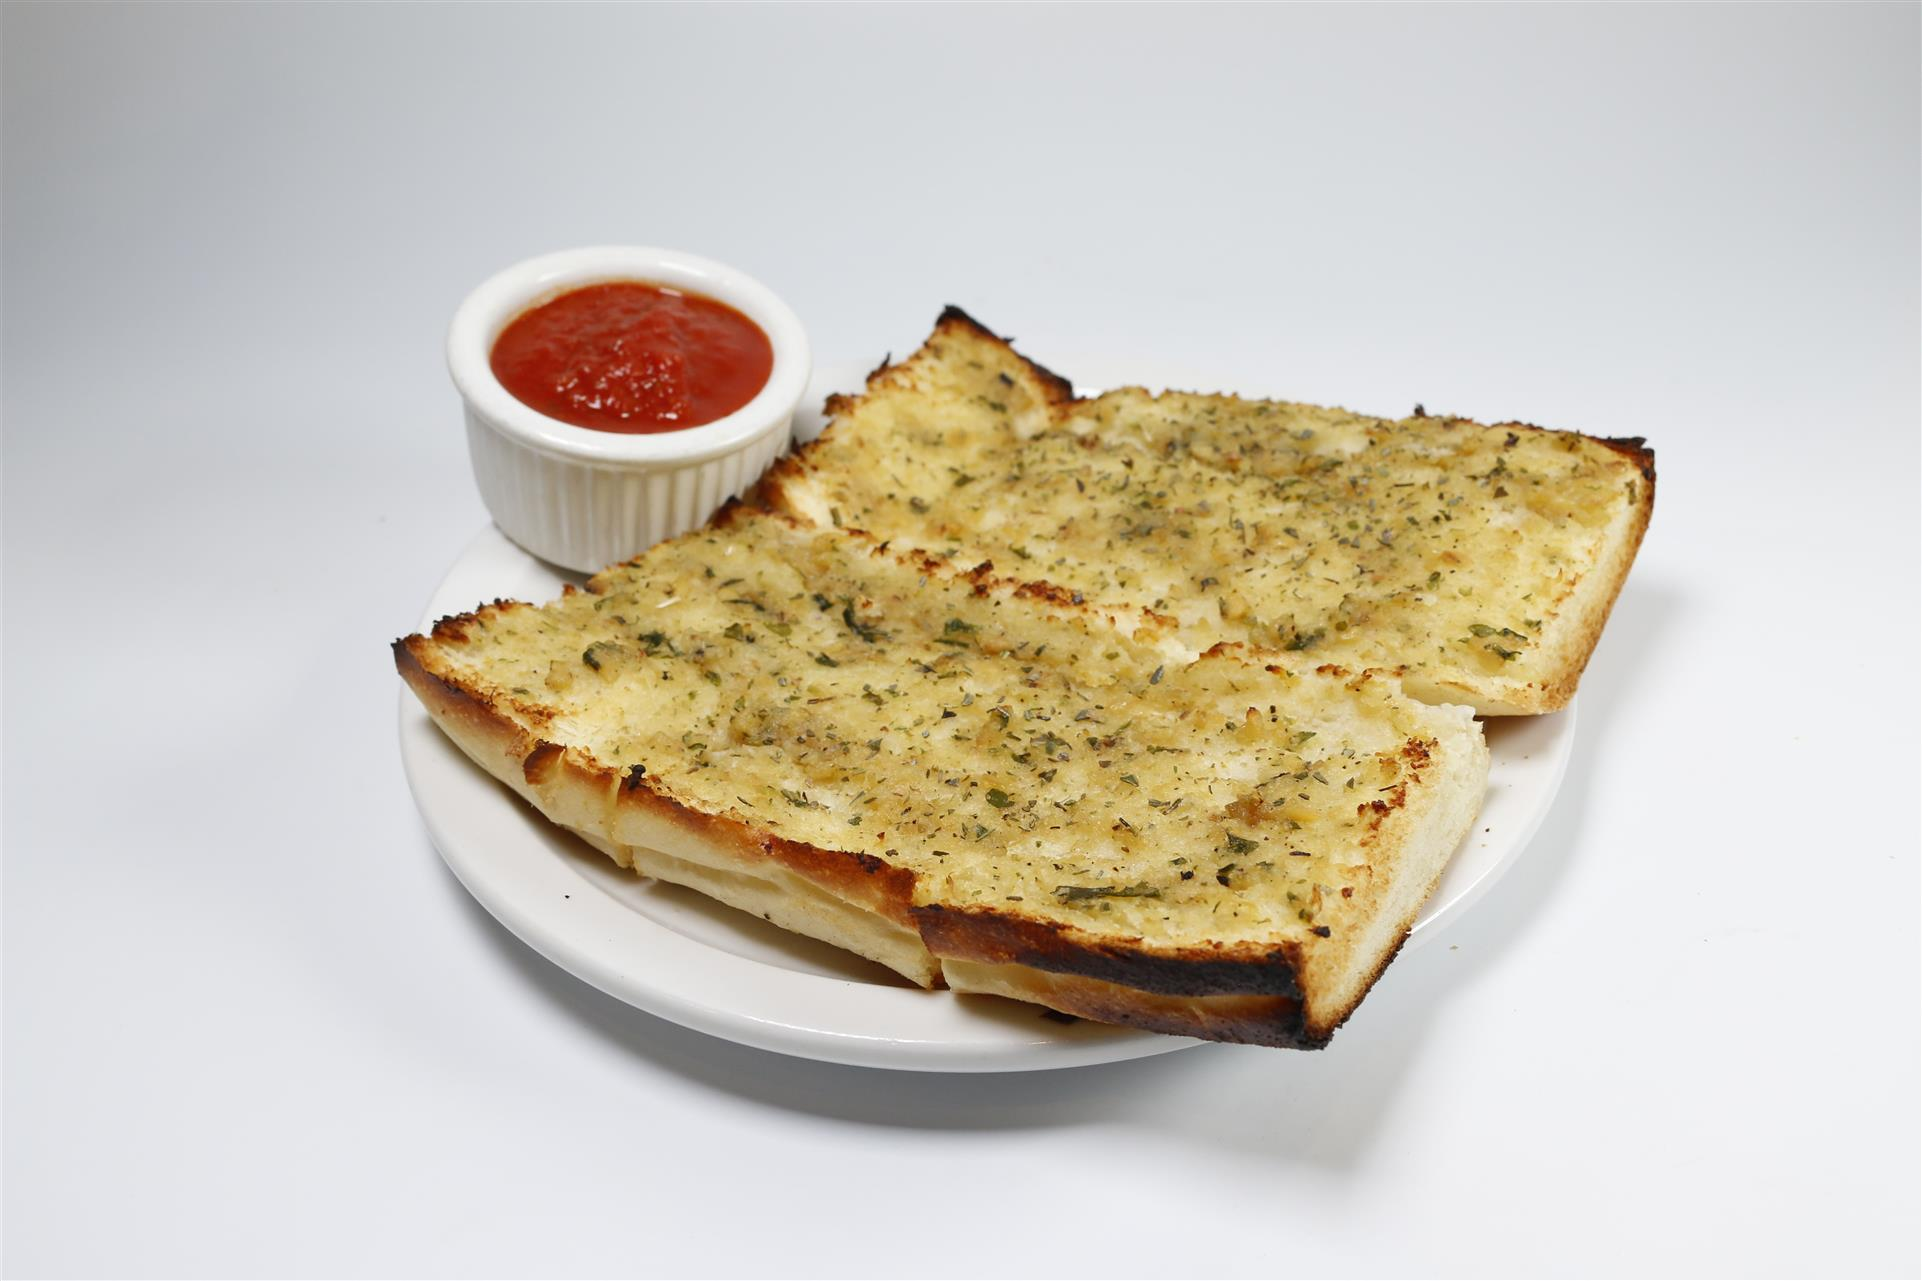 Garlic Bread with a side of marinara sauce